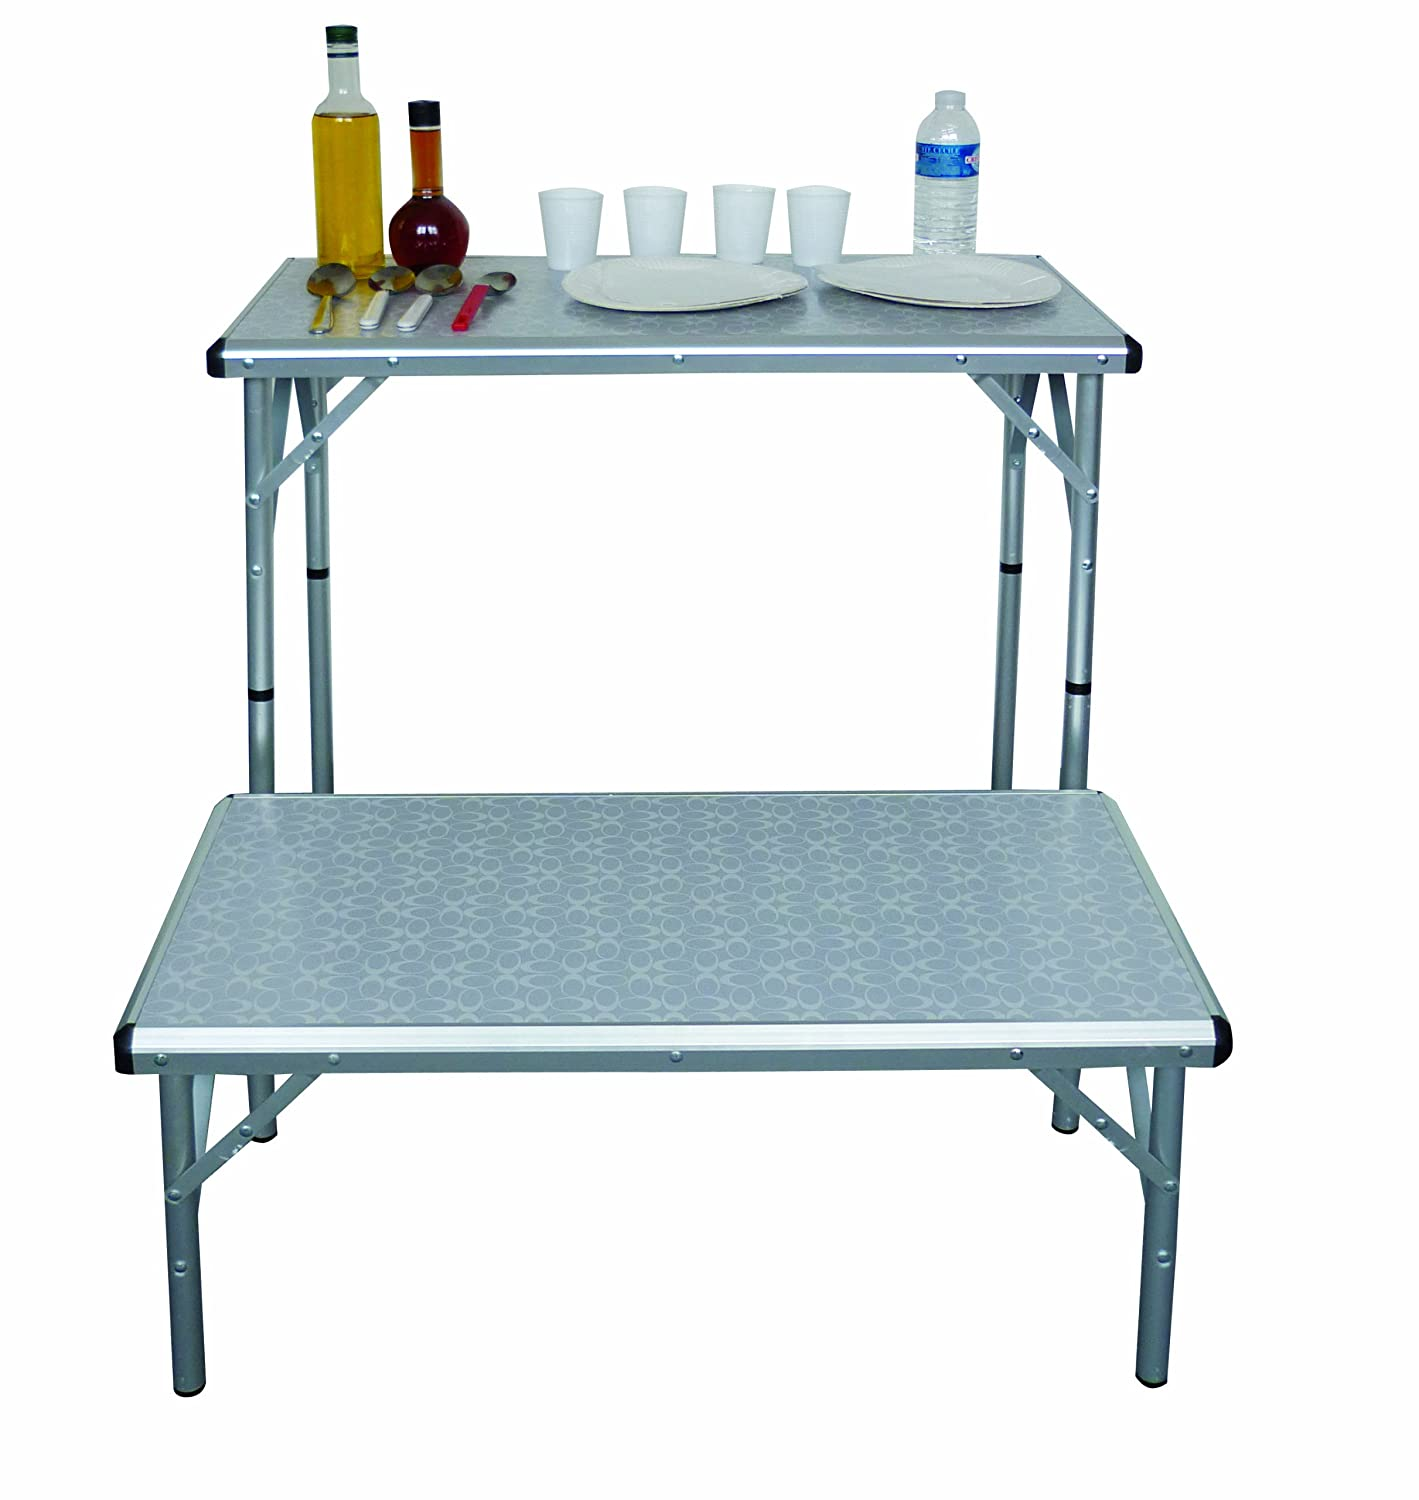 Coleman 6-in-1 Camping Table, Silver: Amazon.co.uk: Sports & Outdoors